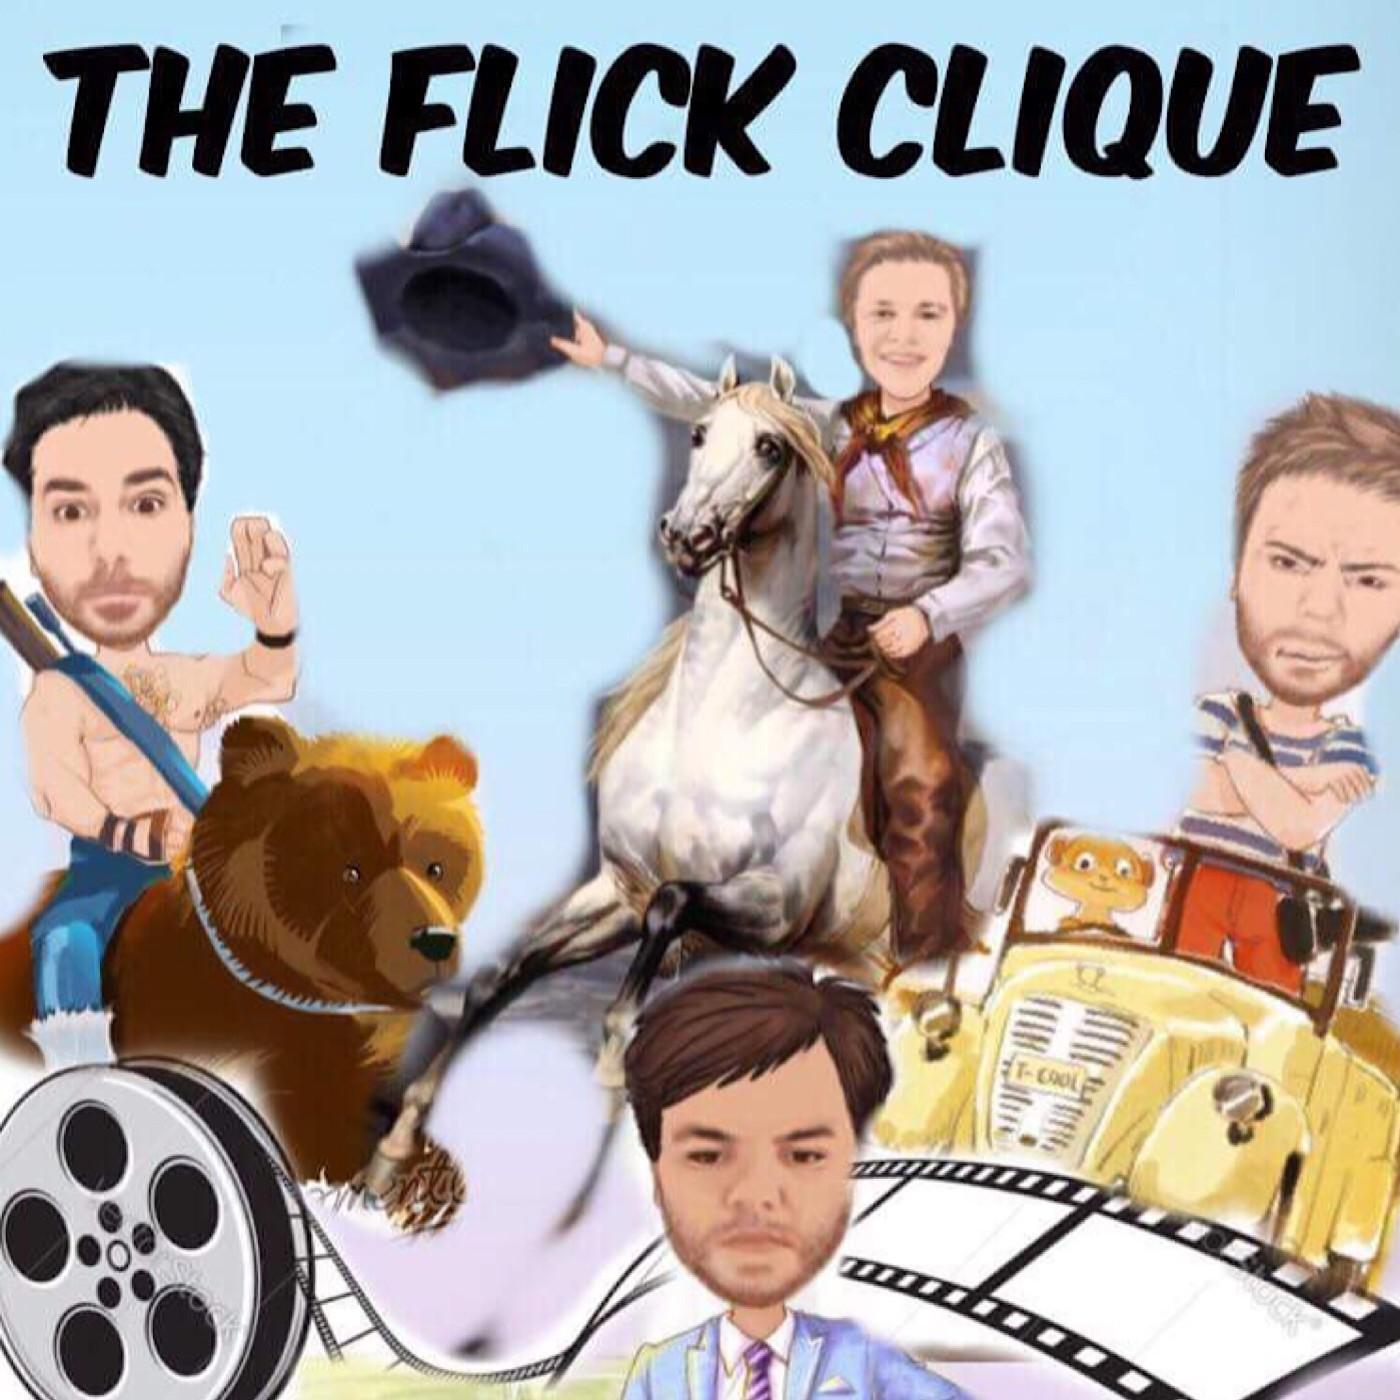 THE FLICK CLIQUE (podcast) - The Flick Clique | Listen Notes